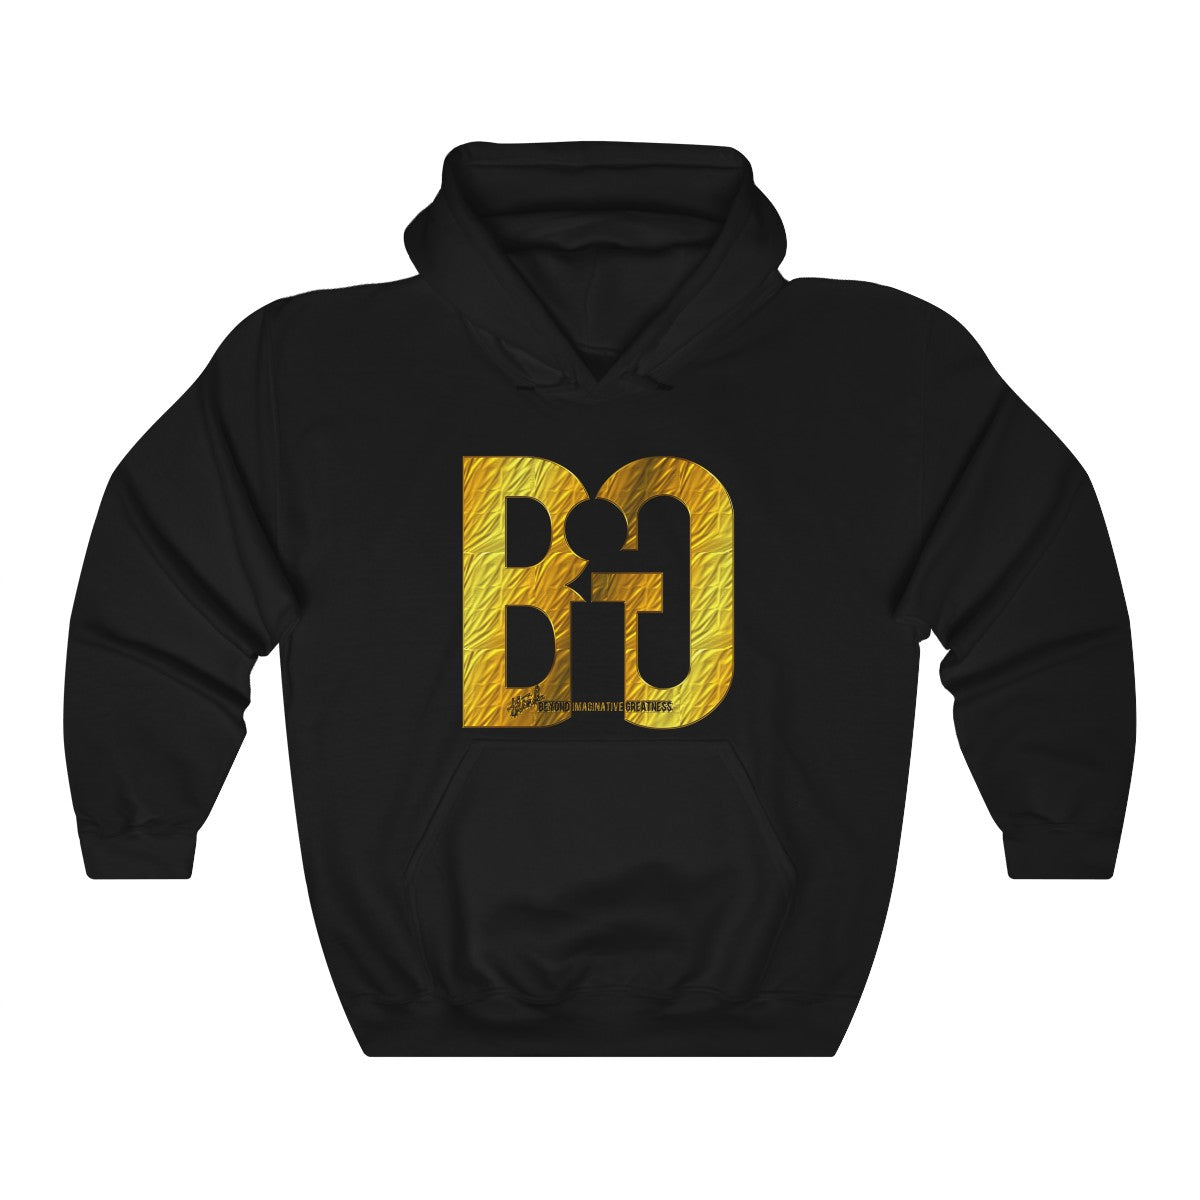 Gold™ Hooded Sweatshirt